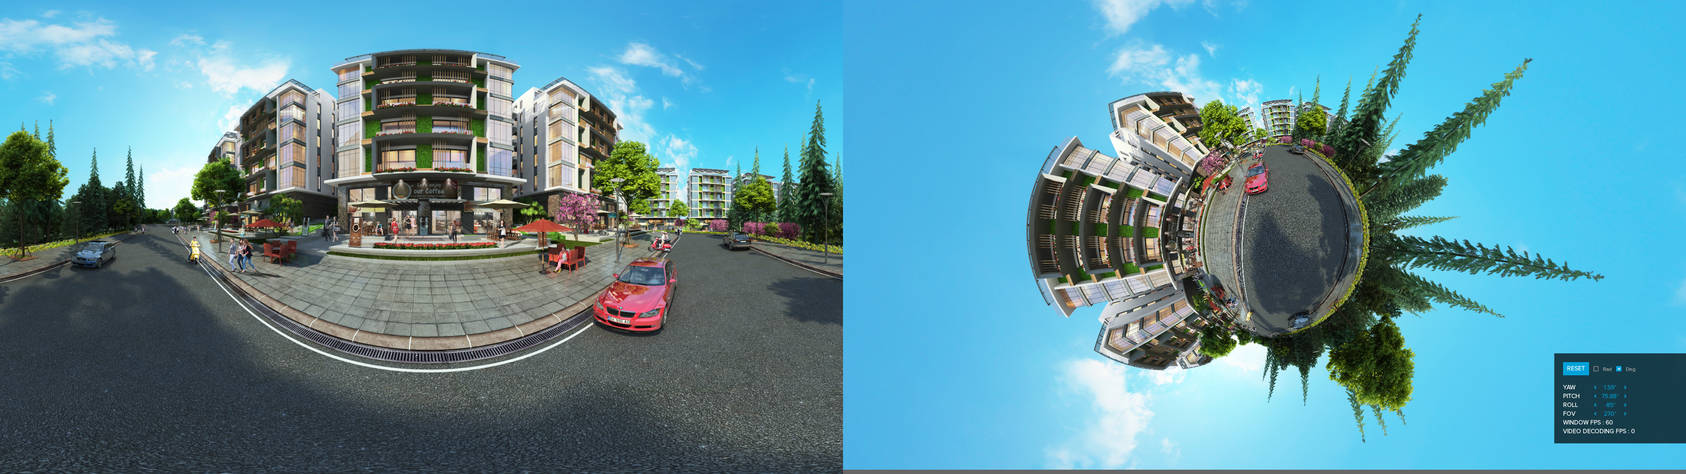 Panorama 3D street GoProVR by nnq2603